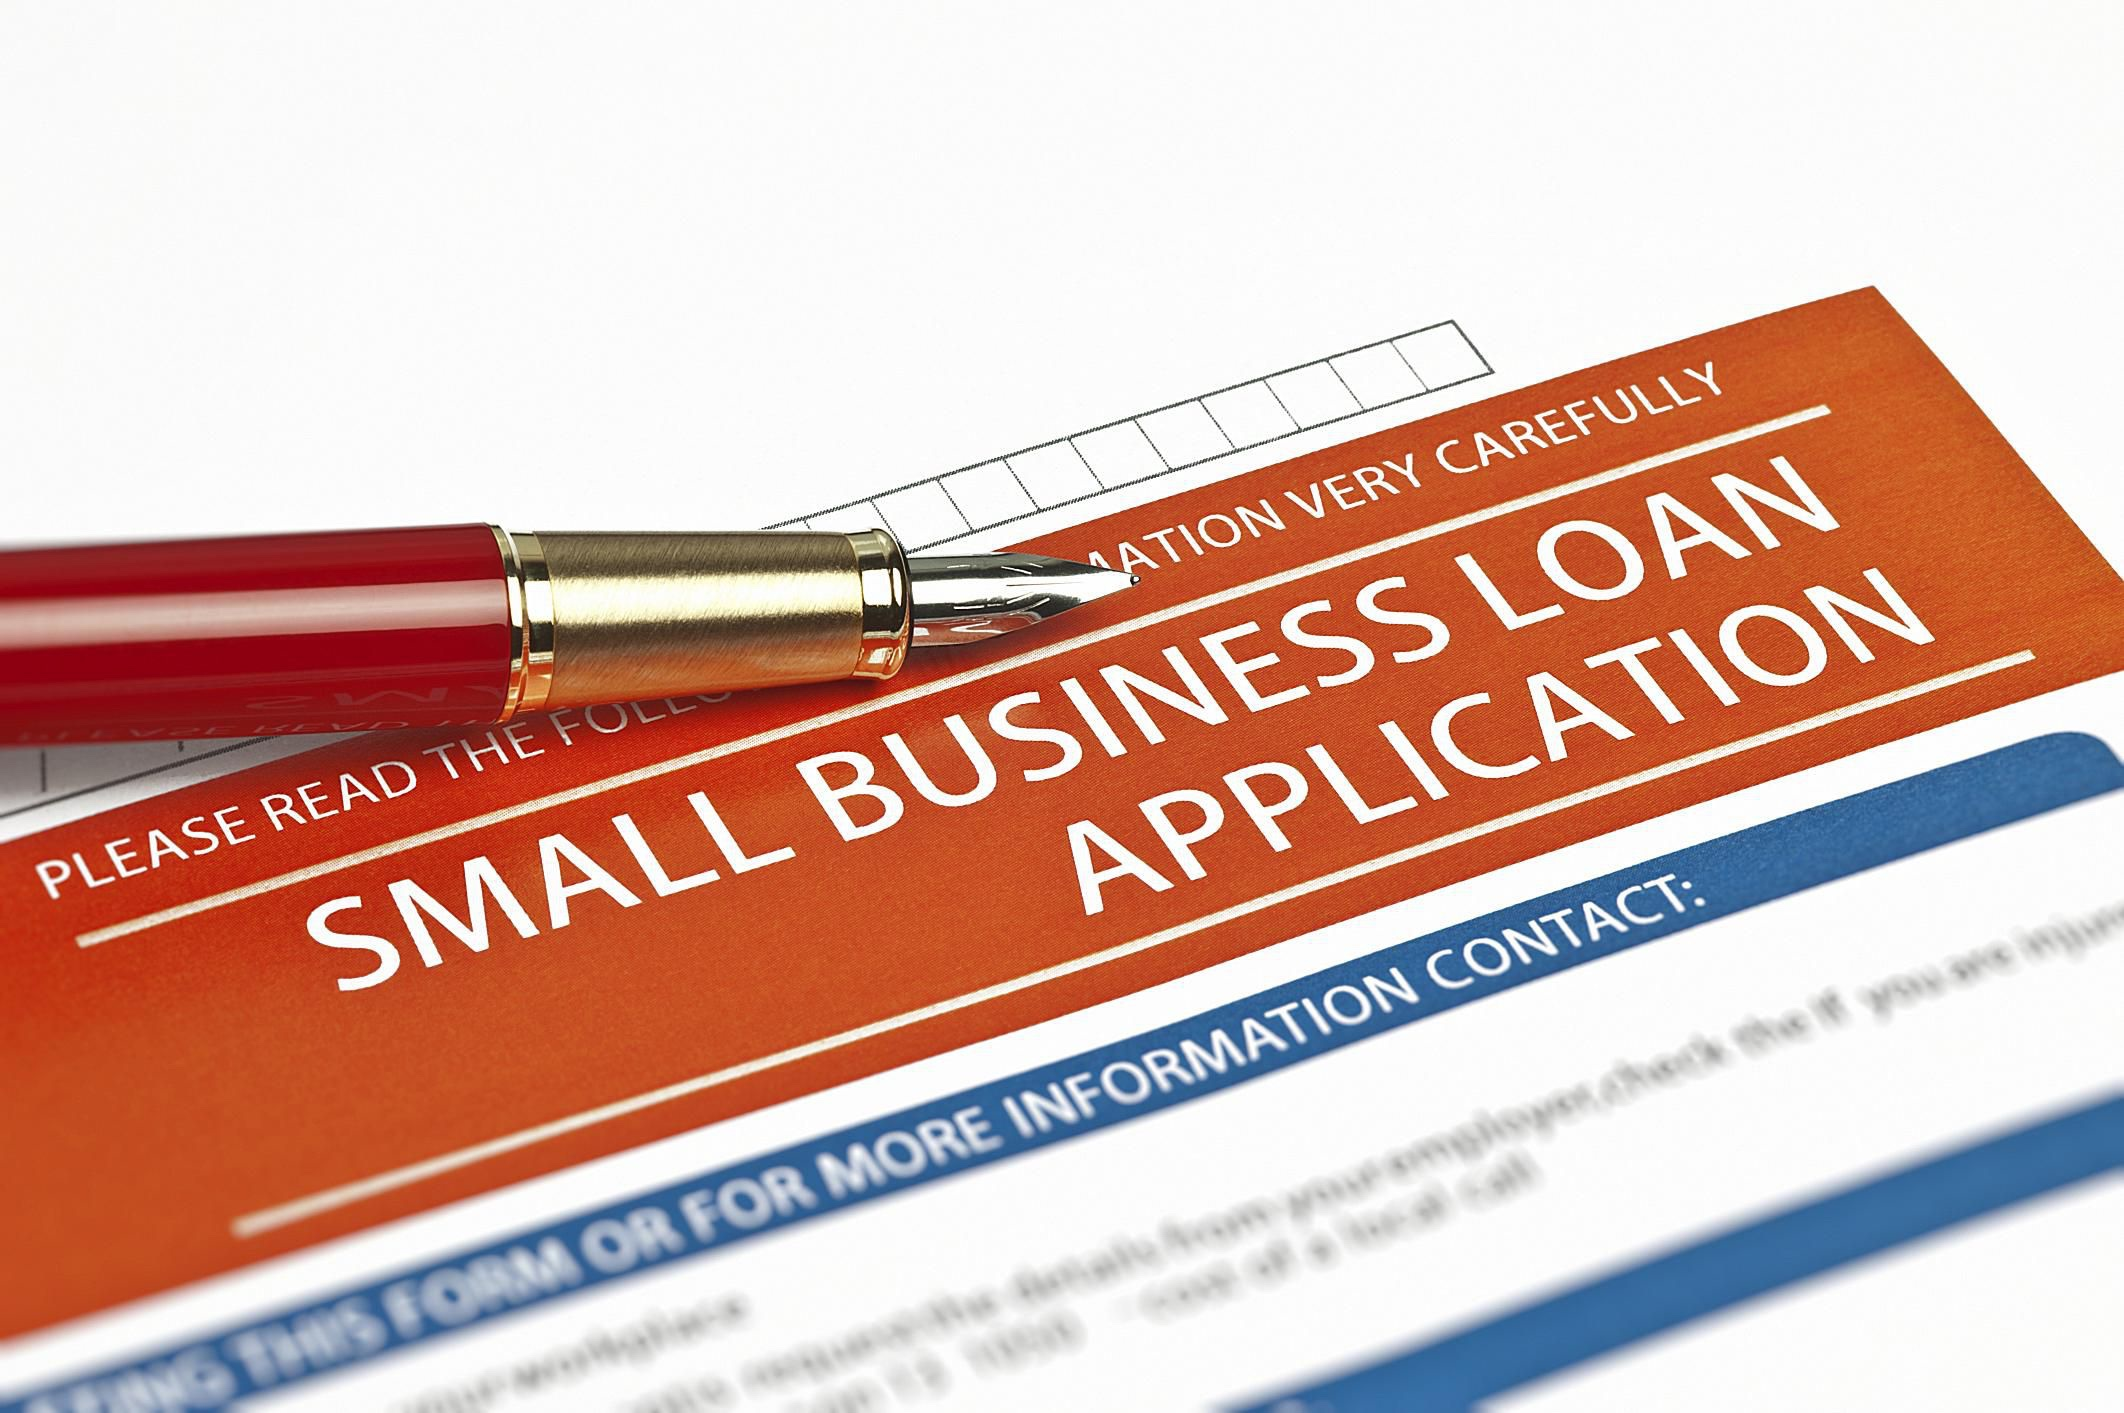 Lt. Governor Gilchrist & Former Lt. Governor Calley Call for Federal Action on Additional SBA Forgivable Loans